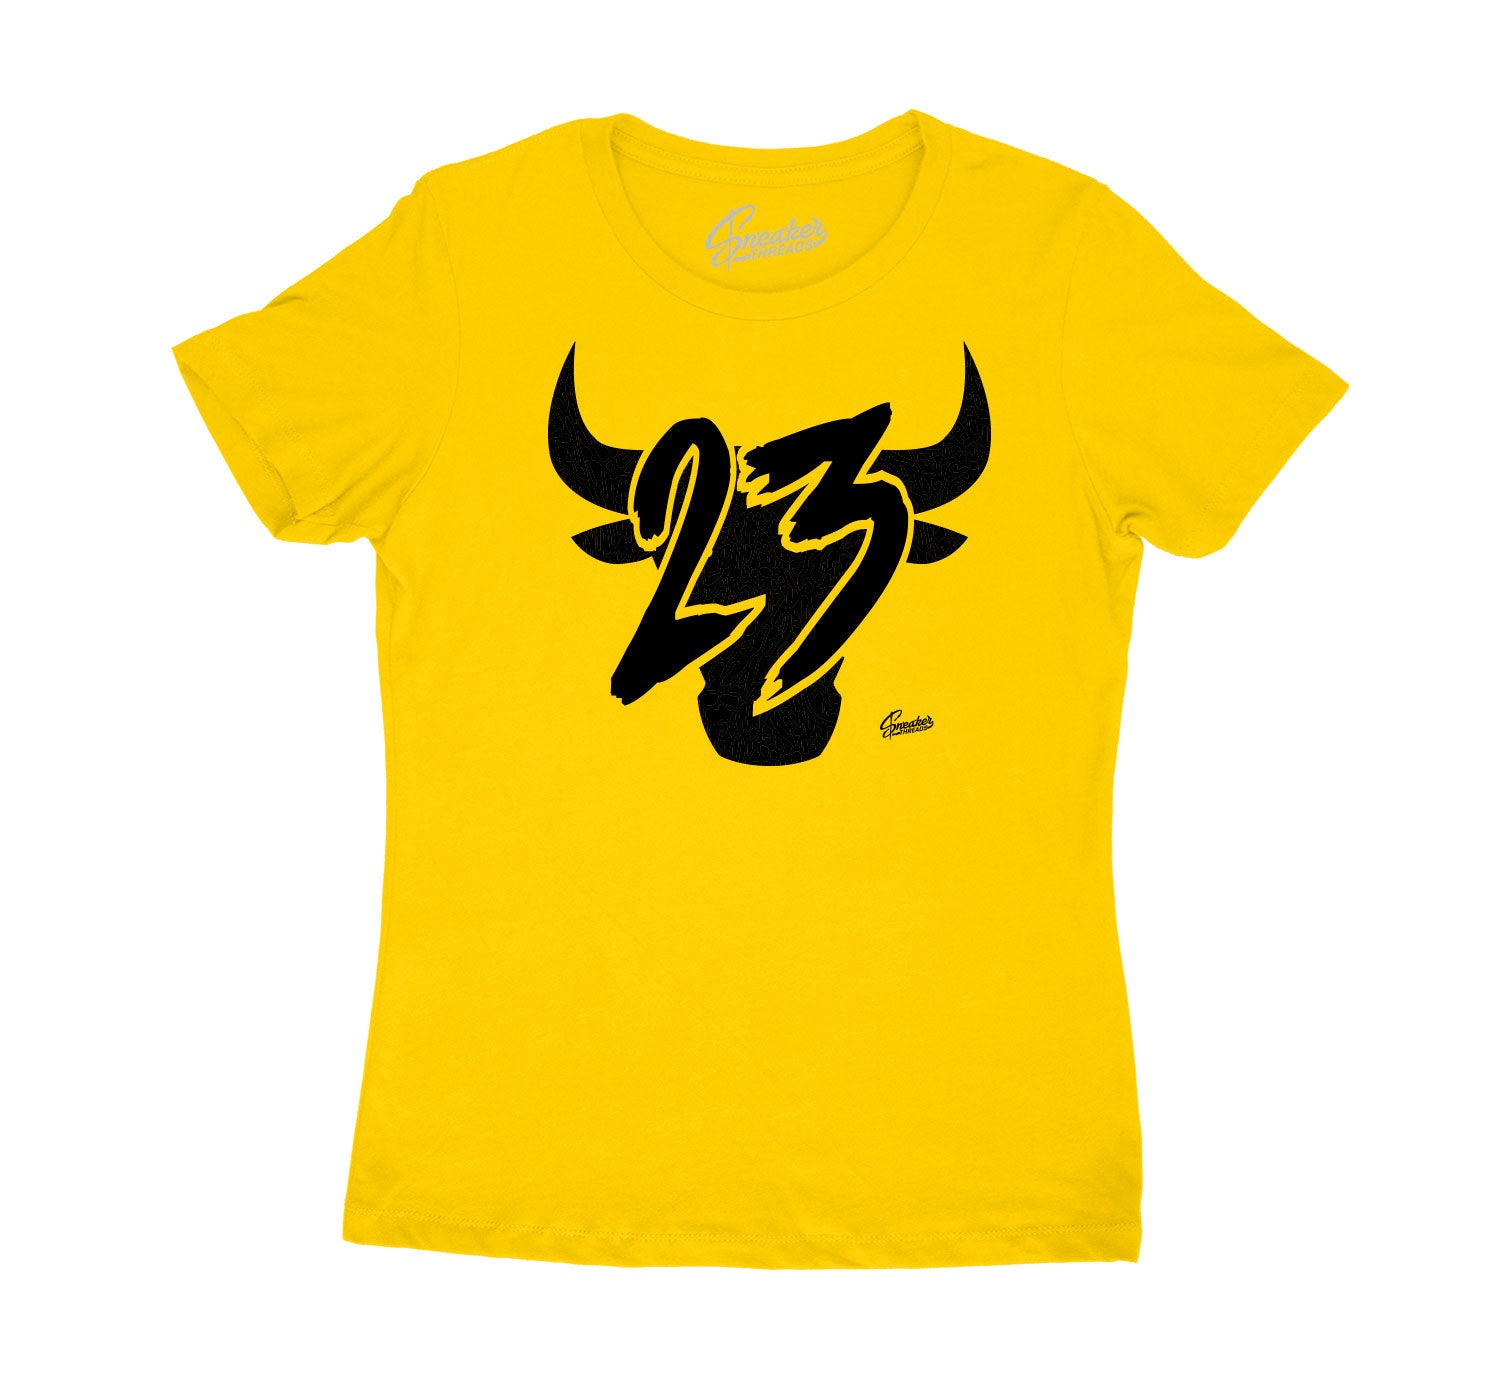 Jordan 12 University sneaker collection matches with womens tee collection